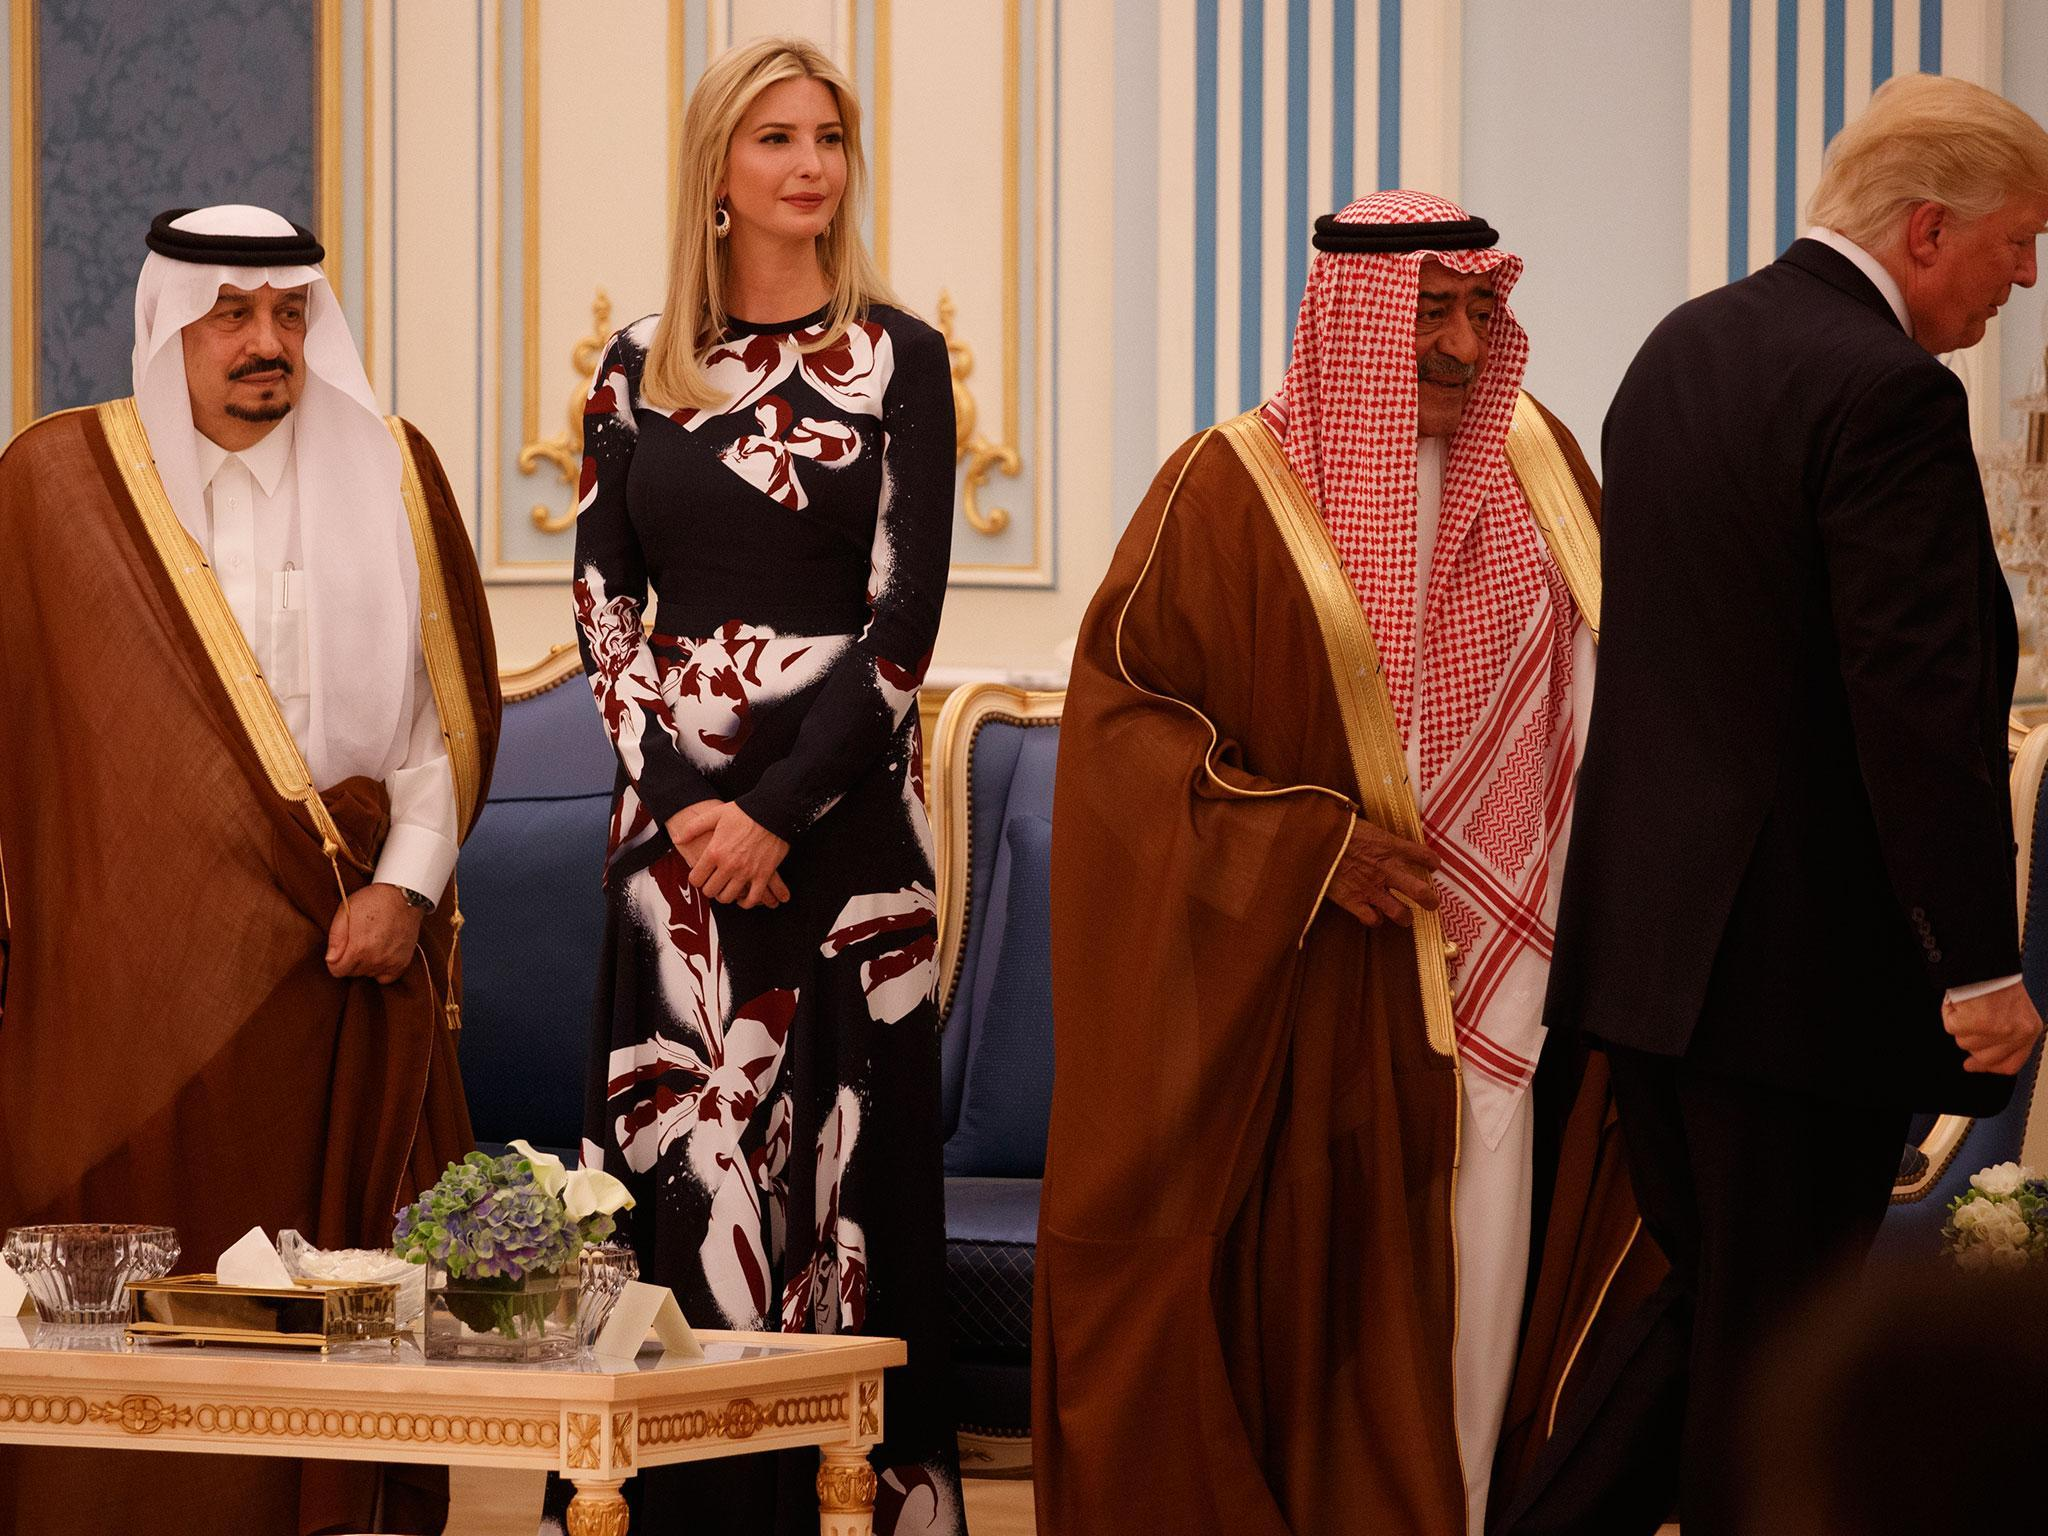 Ivanka Trump praises Saudi Arabia on women's rights after country donates  $100 million to her cause | The Independent